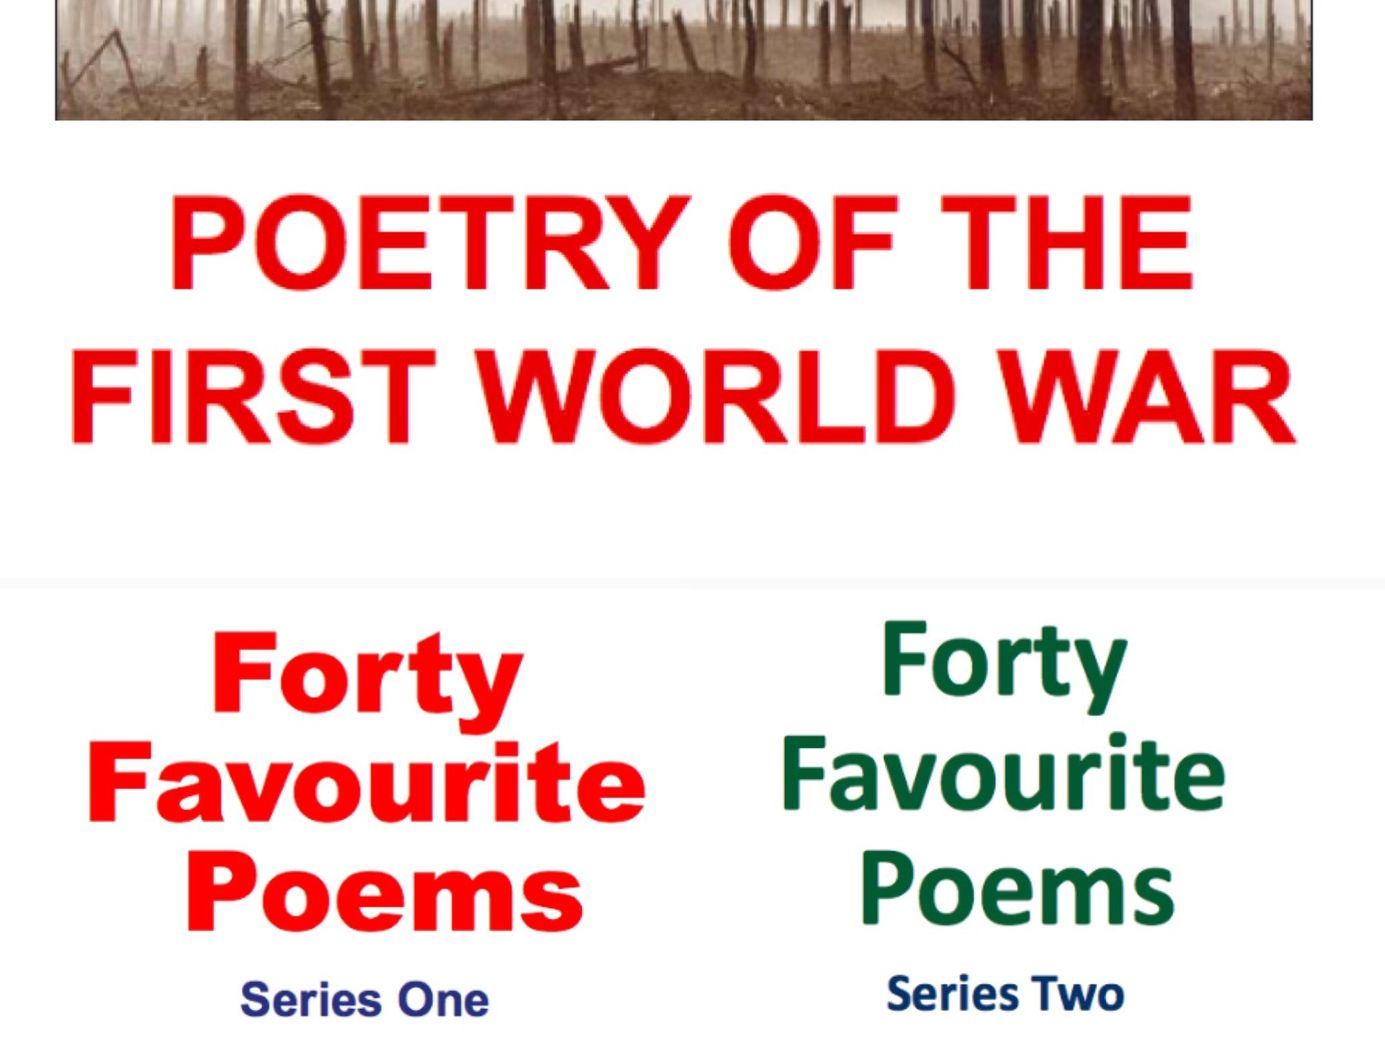 KS3 and KS4 Poetry Bundle: First World War, Forty Favourite Poems Series One and Two Full Schemes of Work